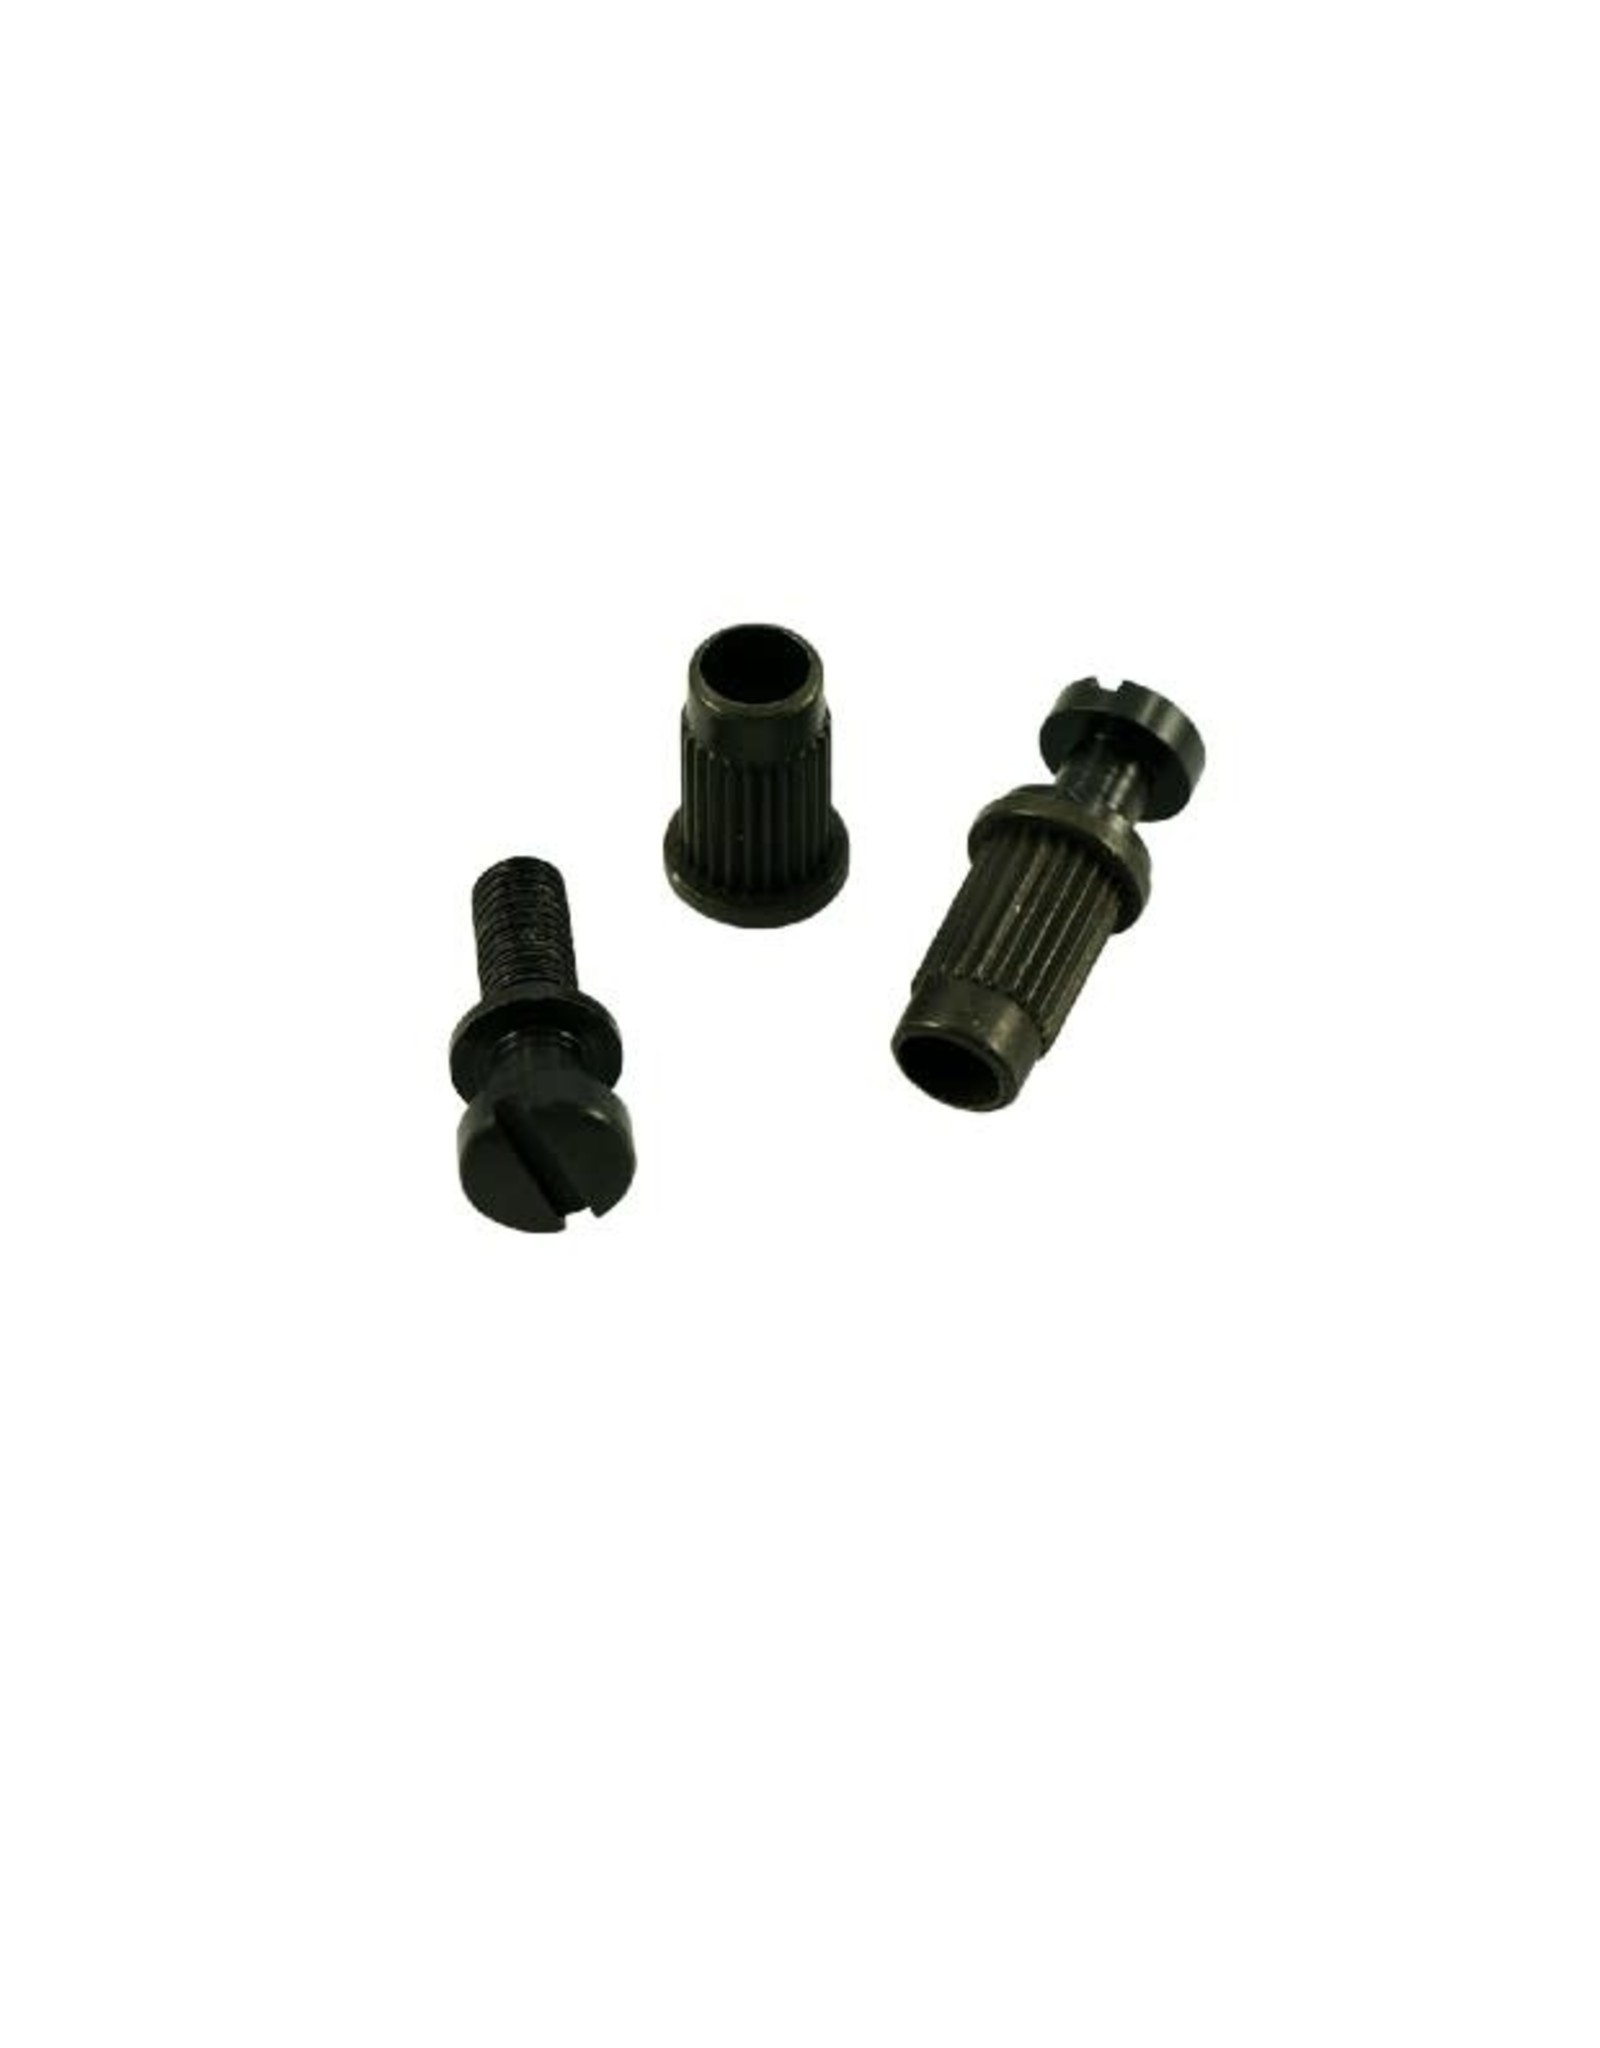 WD Music Products WD 4 Piece Stop Tailpiece Stud & Insert Set With Metric Threads Black